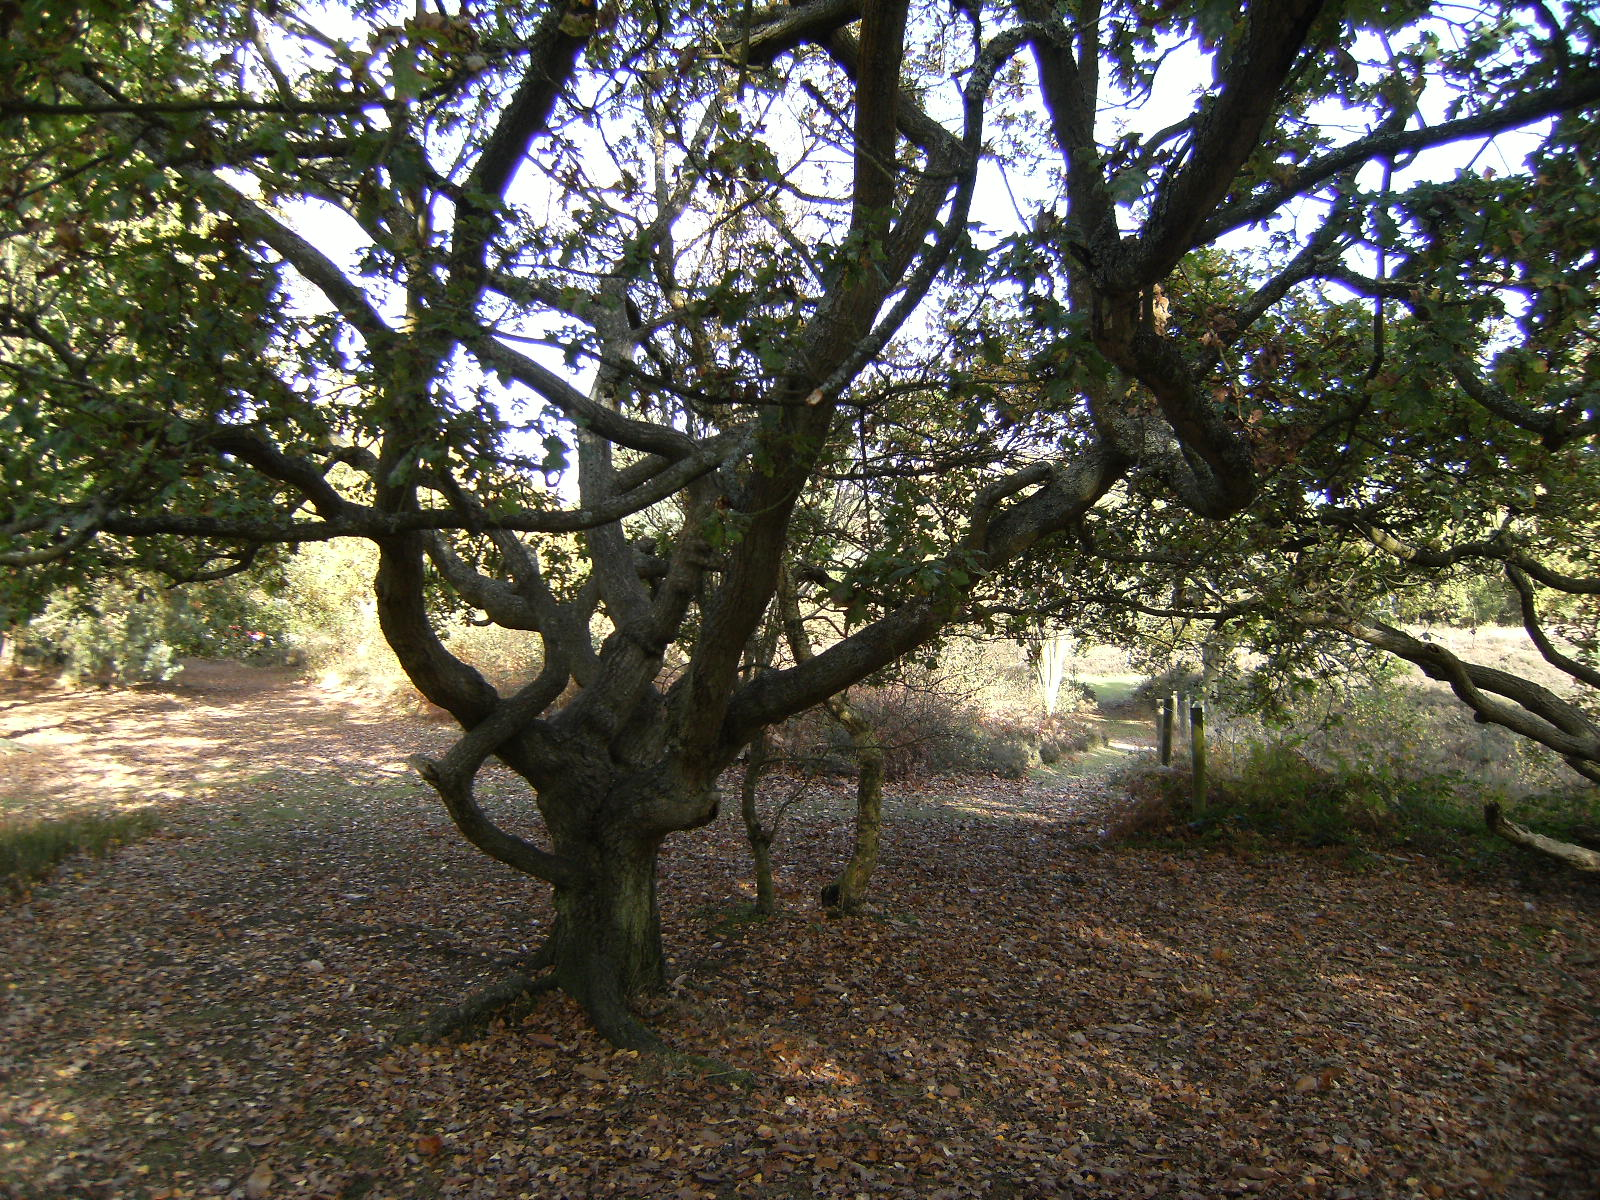 DSCF2351 Gnarled tree on Finchampstead Ridges